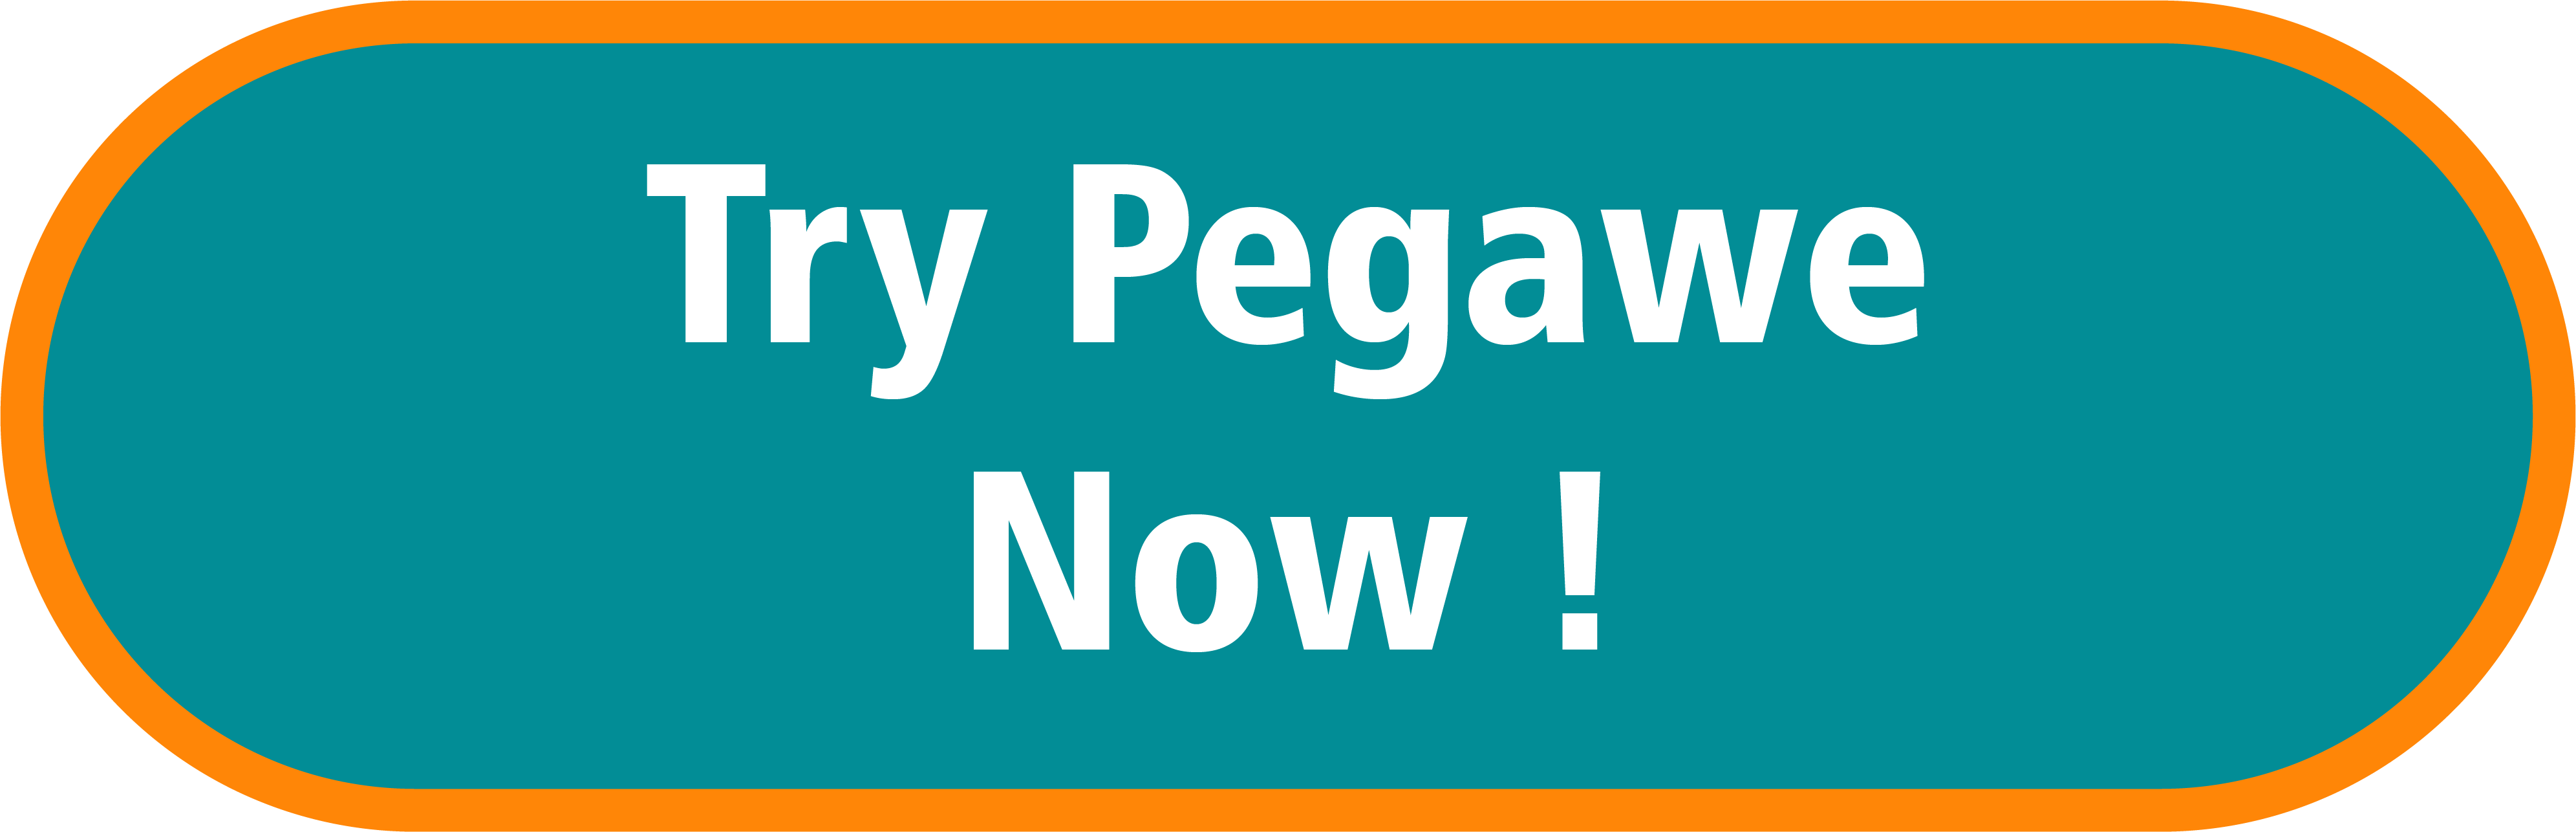 Try Pegawe Now | Payroll Outsourcing Service From Indonesia's #1 Cloud HR Software